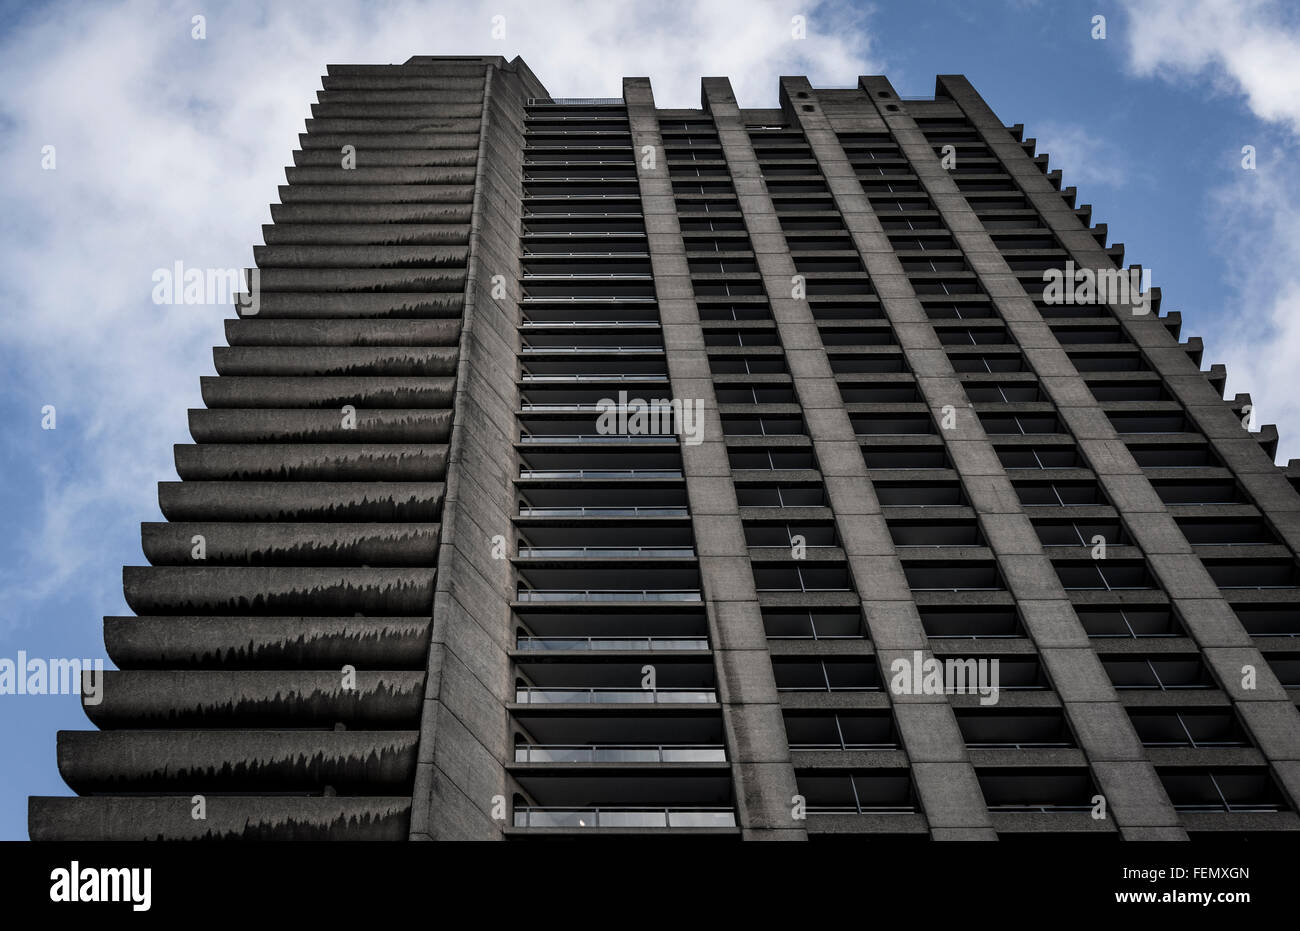 One of the three 42 storey residential tower blocks in The Barbican Estate in The City of London, UK - Stock Image